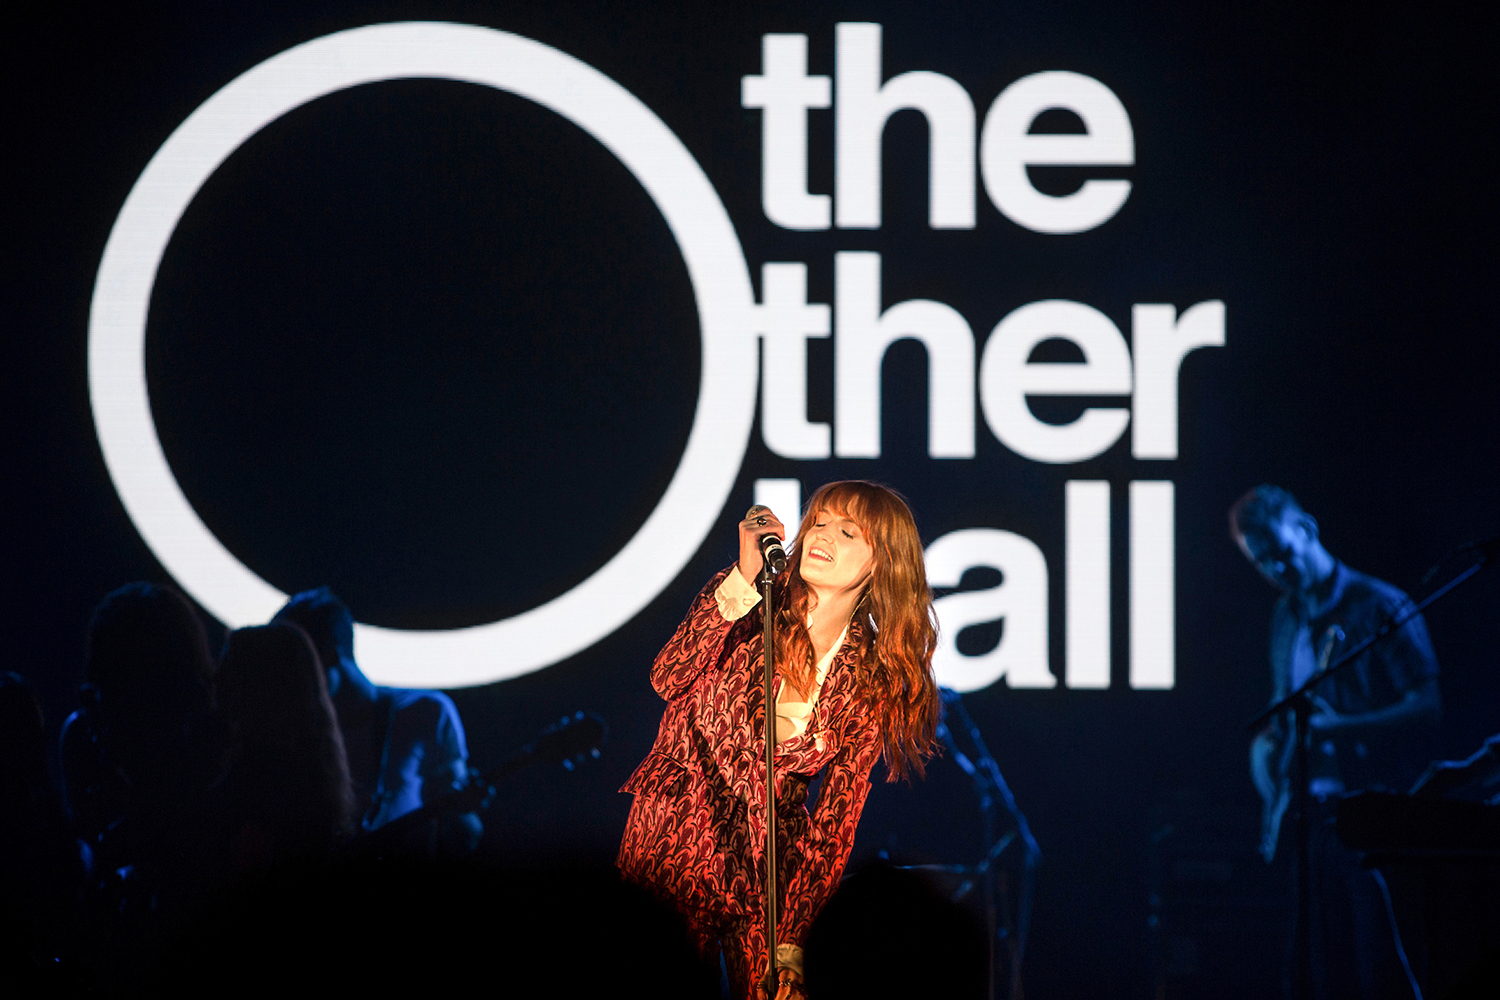 AD Events - The Other Ball